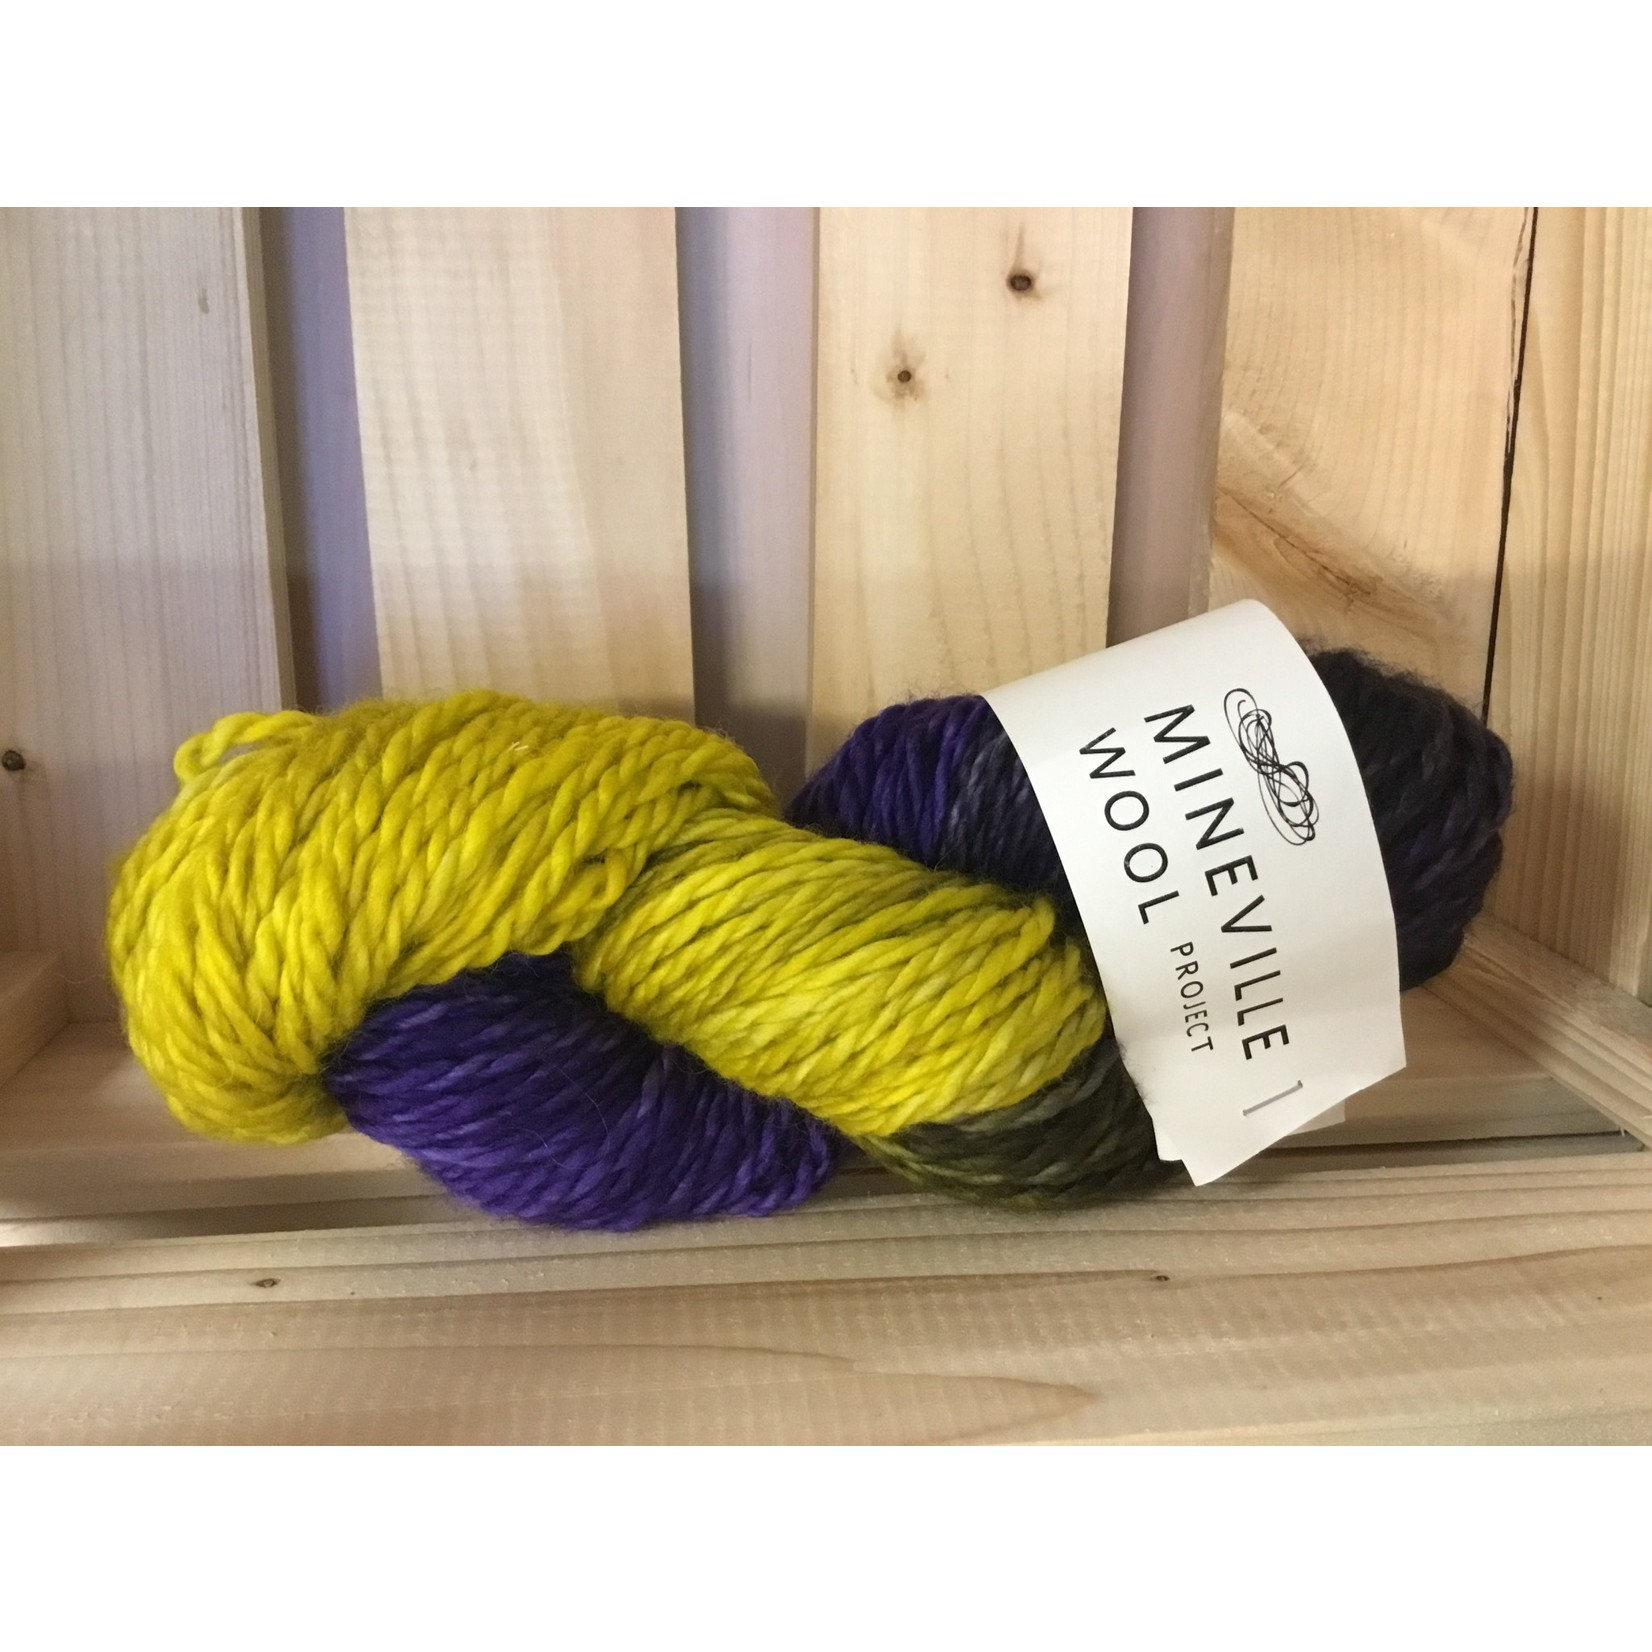 Mineville Merino 2-ply, Chunky by Mineville Wool Project